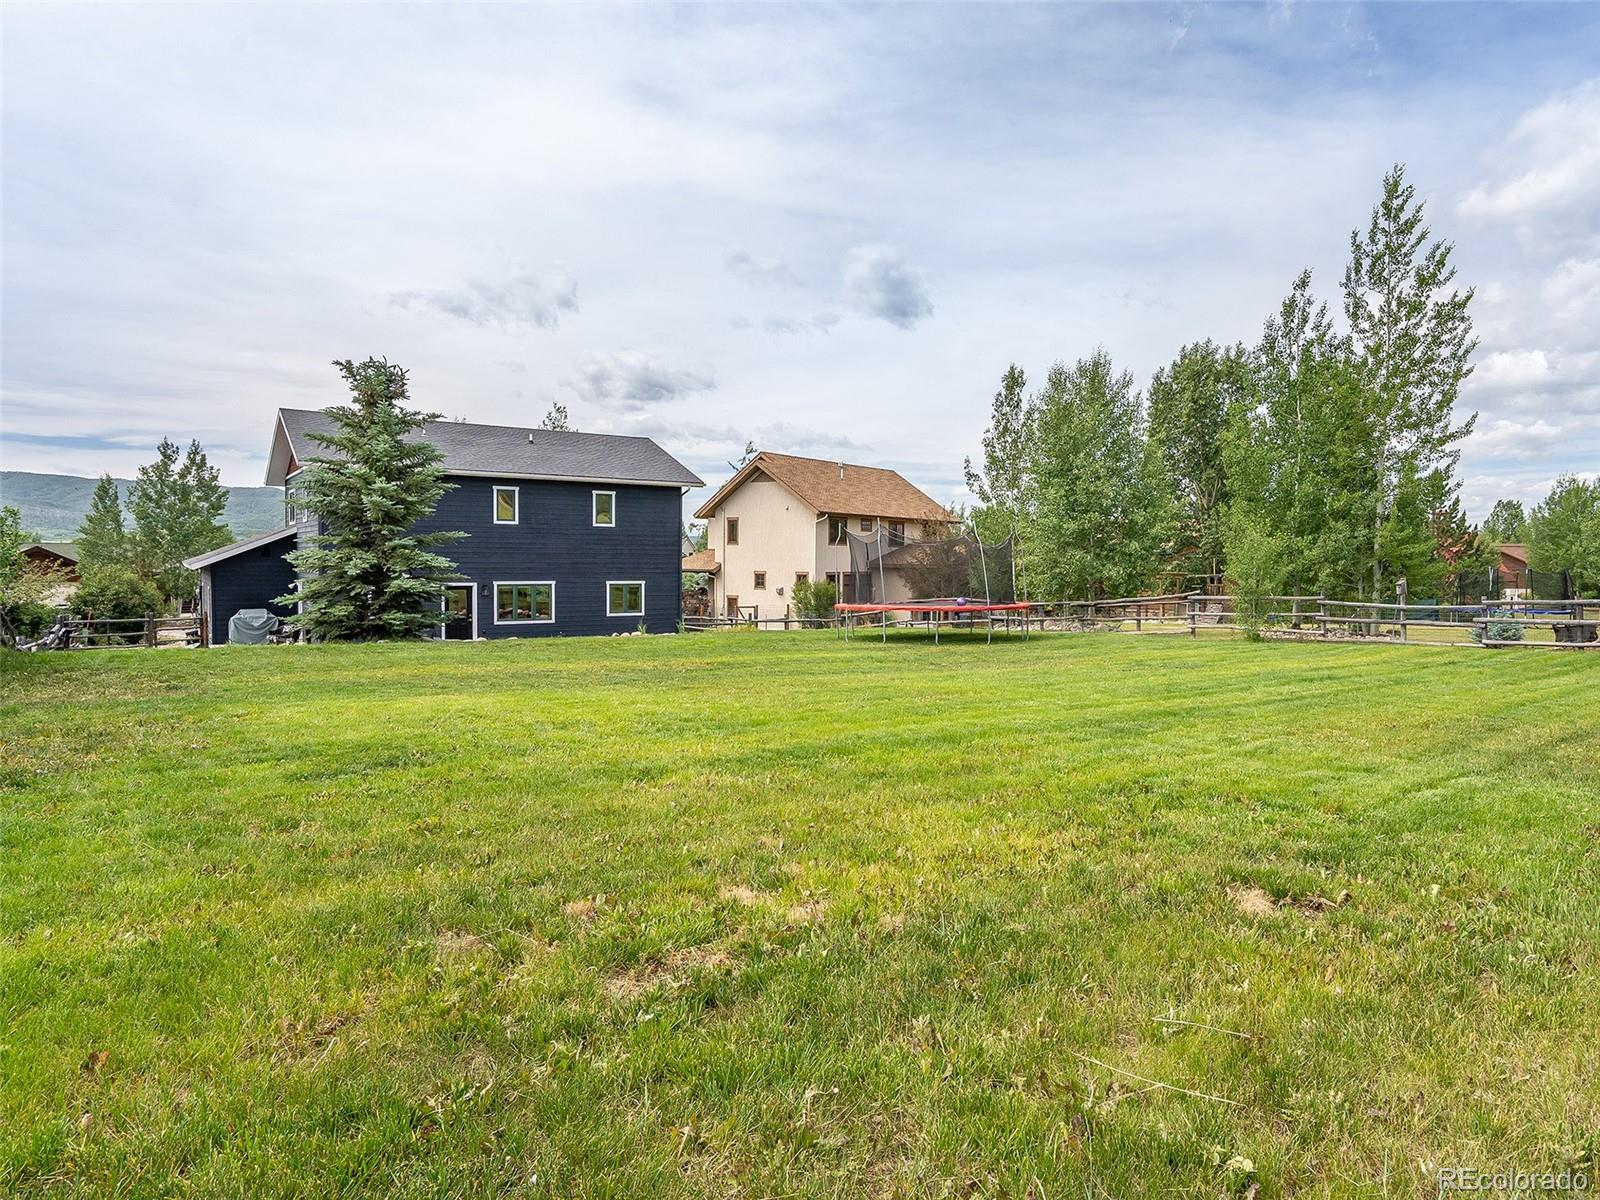 MLS# 2884564 - 22 - 27783 Silver Spur Street, Steamboat Springs, CO 80487